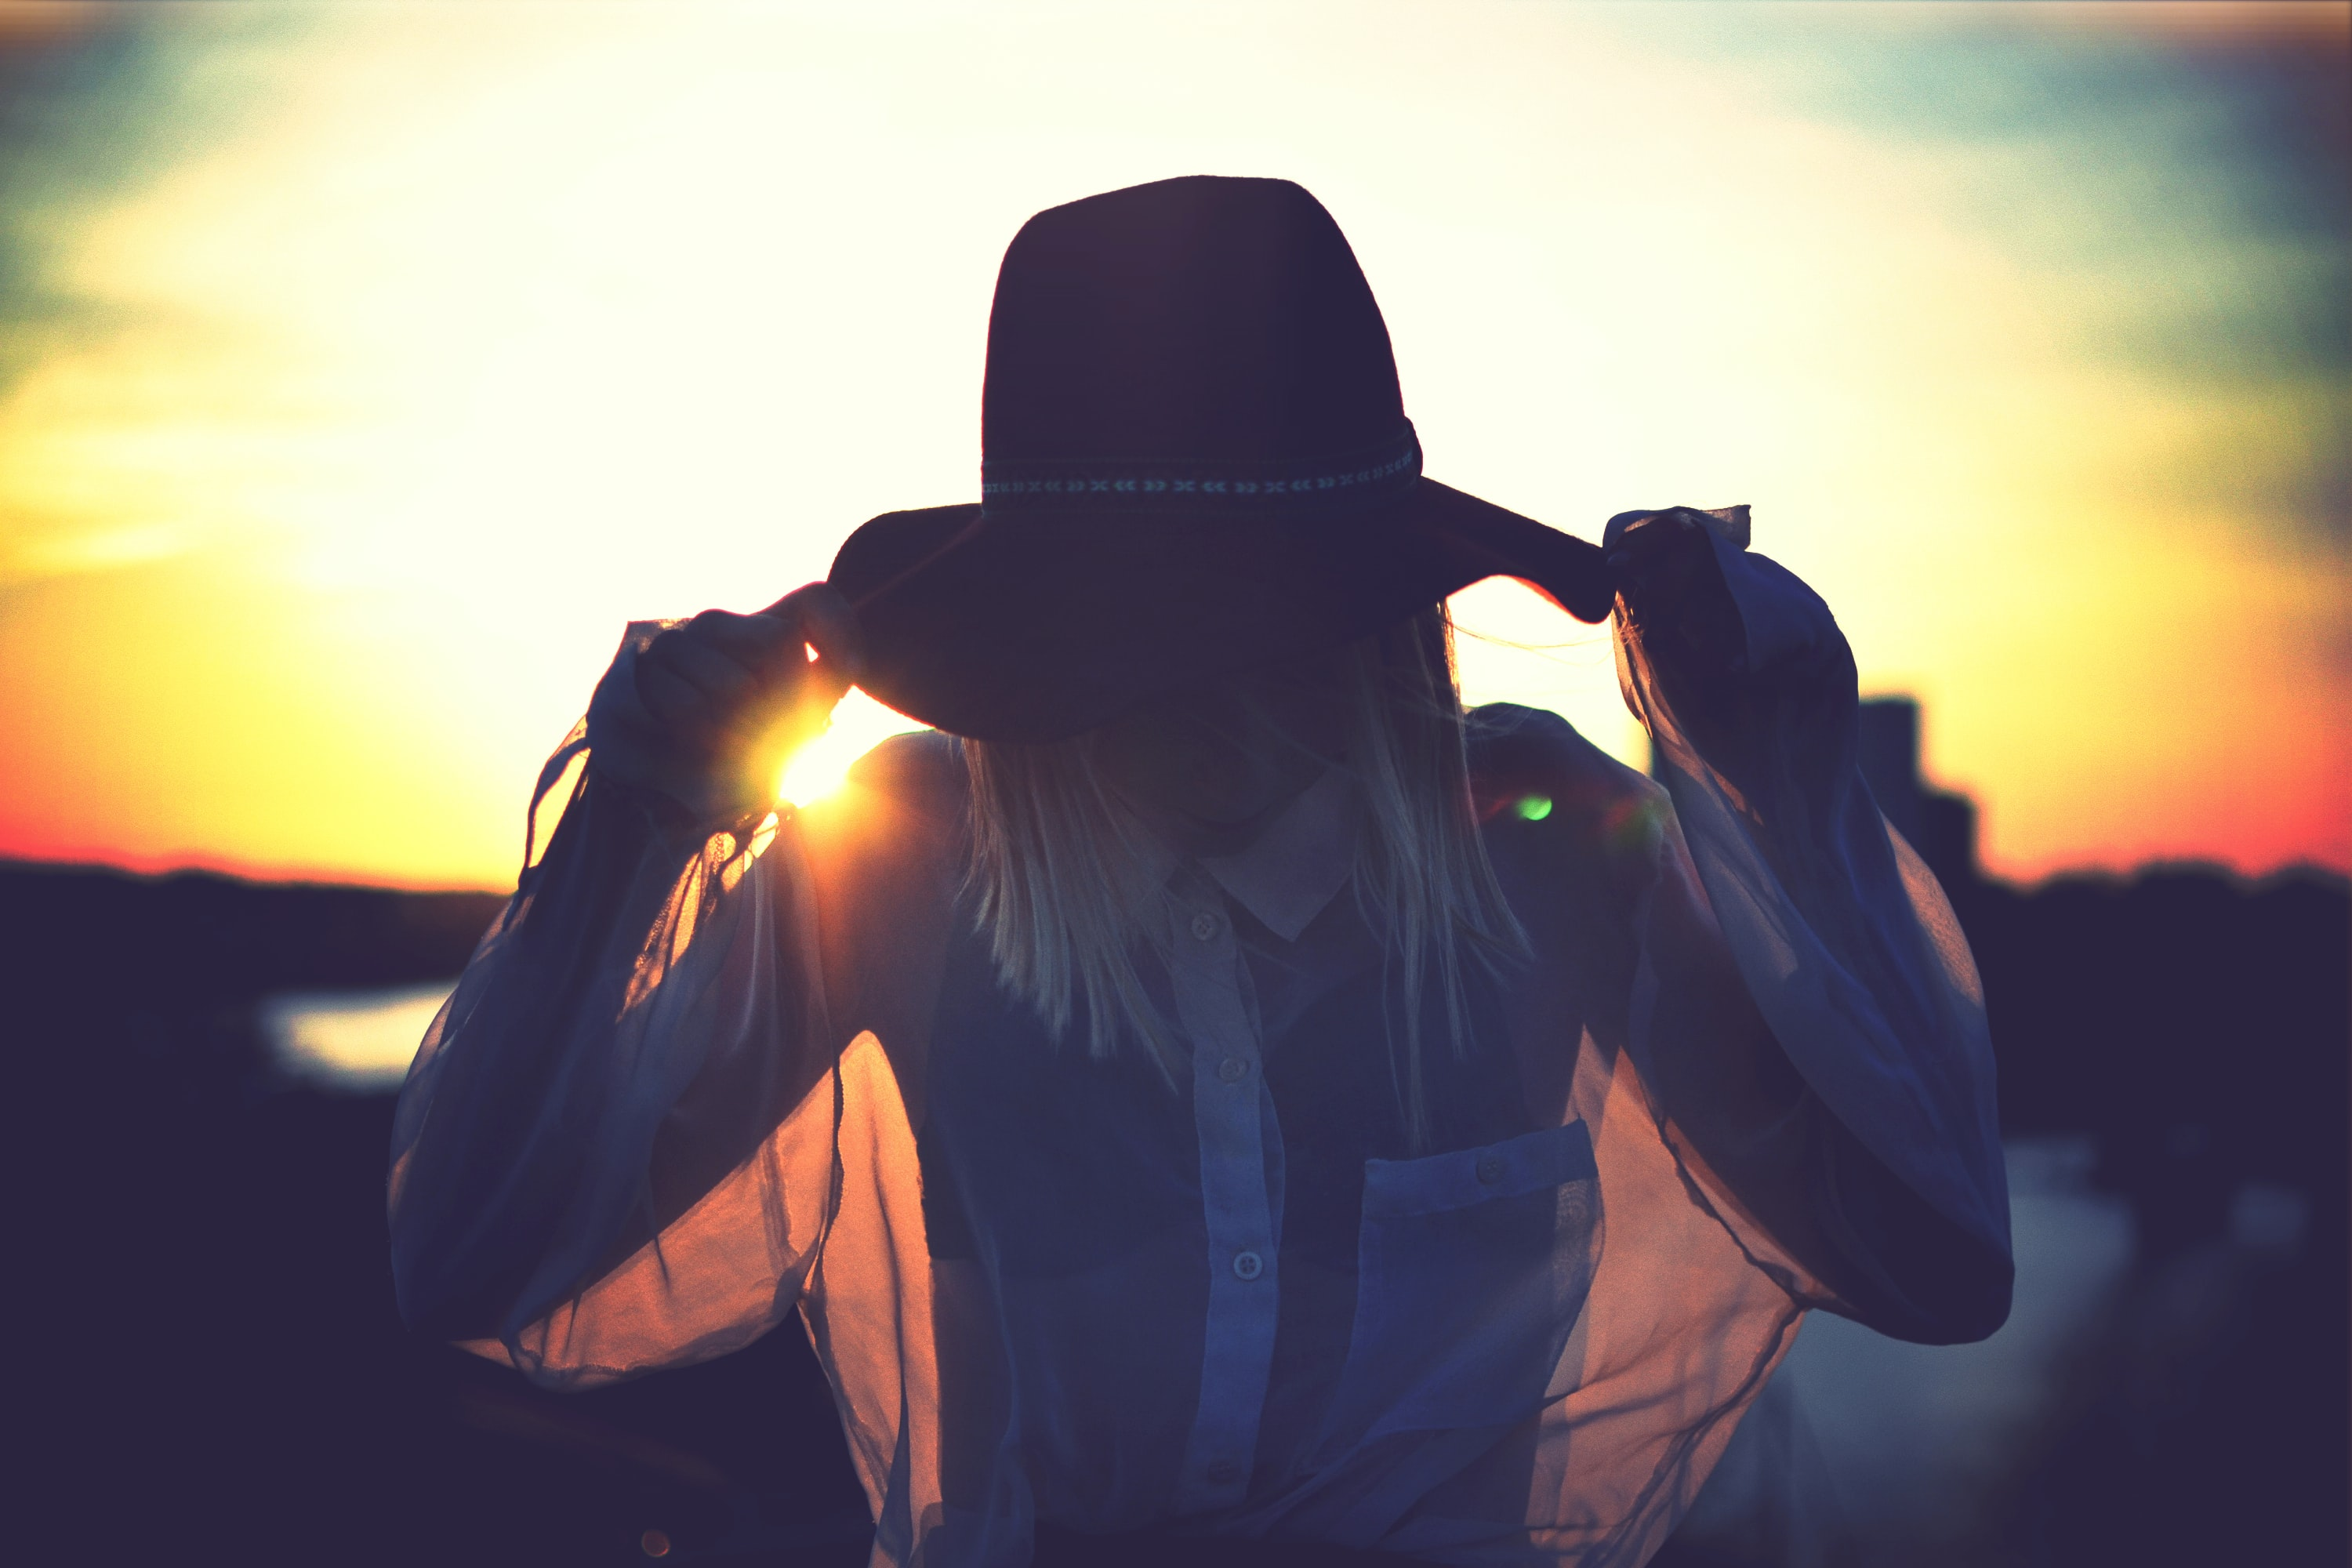 Woman in silhouette in a sheer shirt and hat before the setting sun in Långholmen